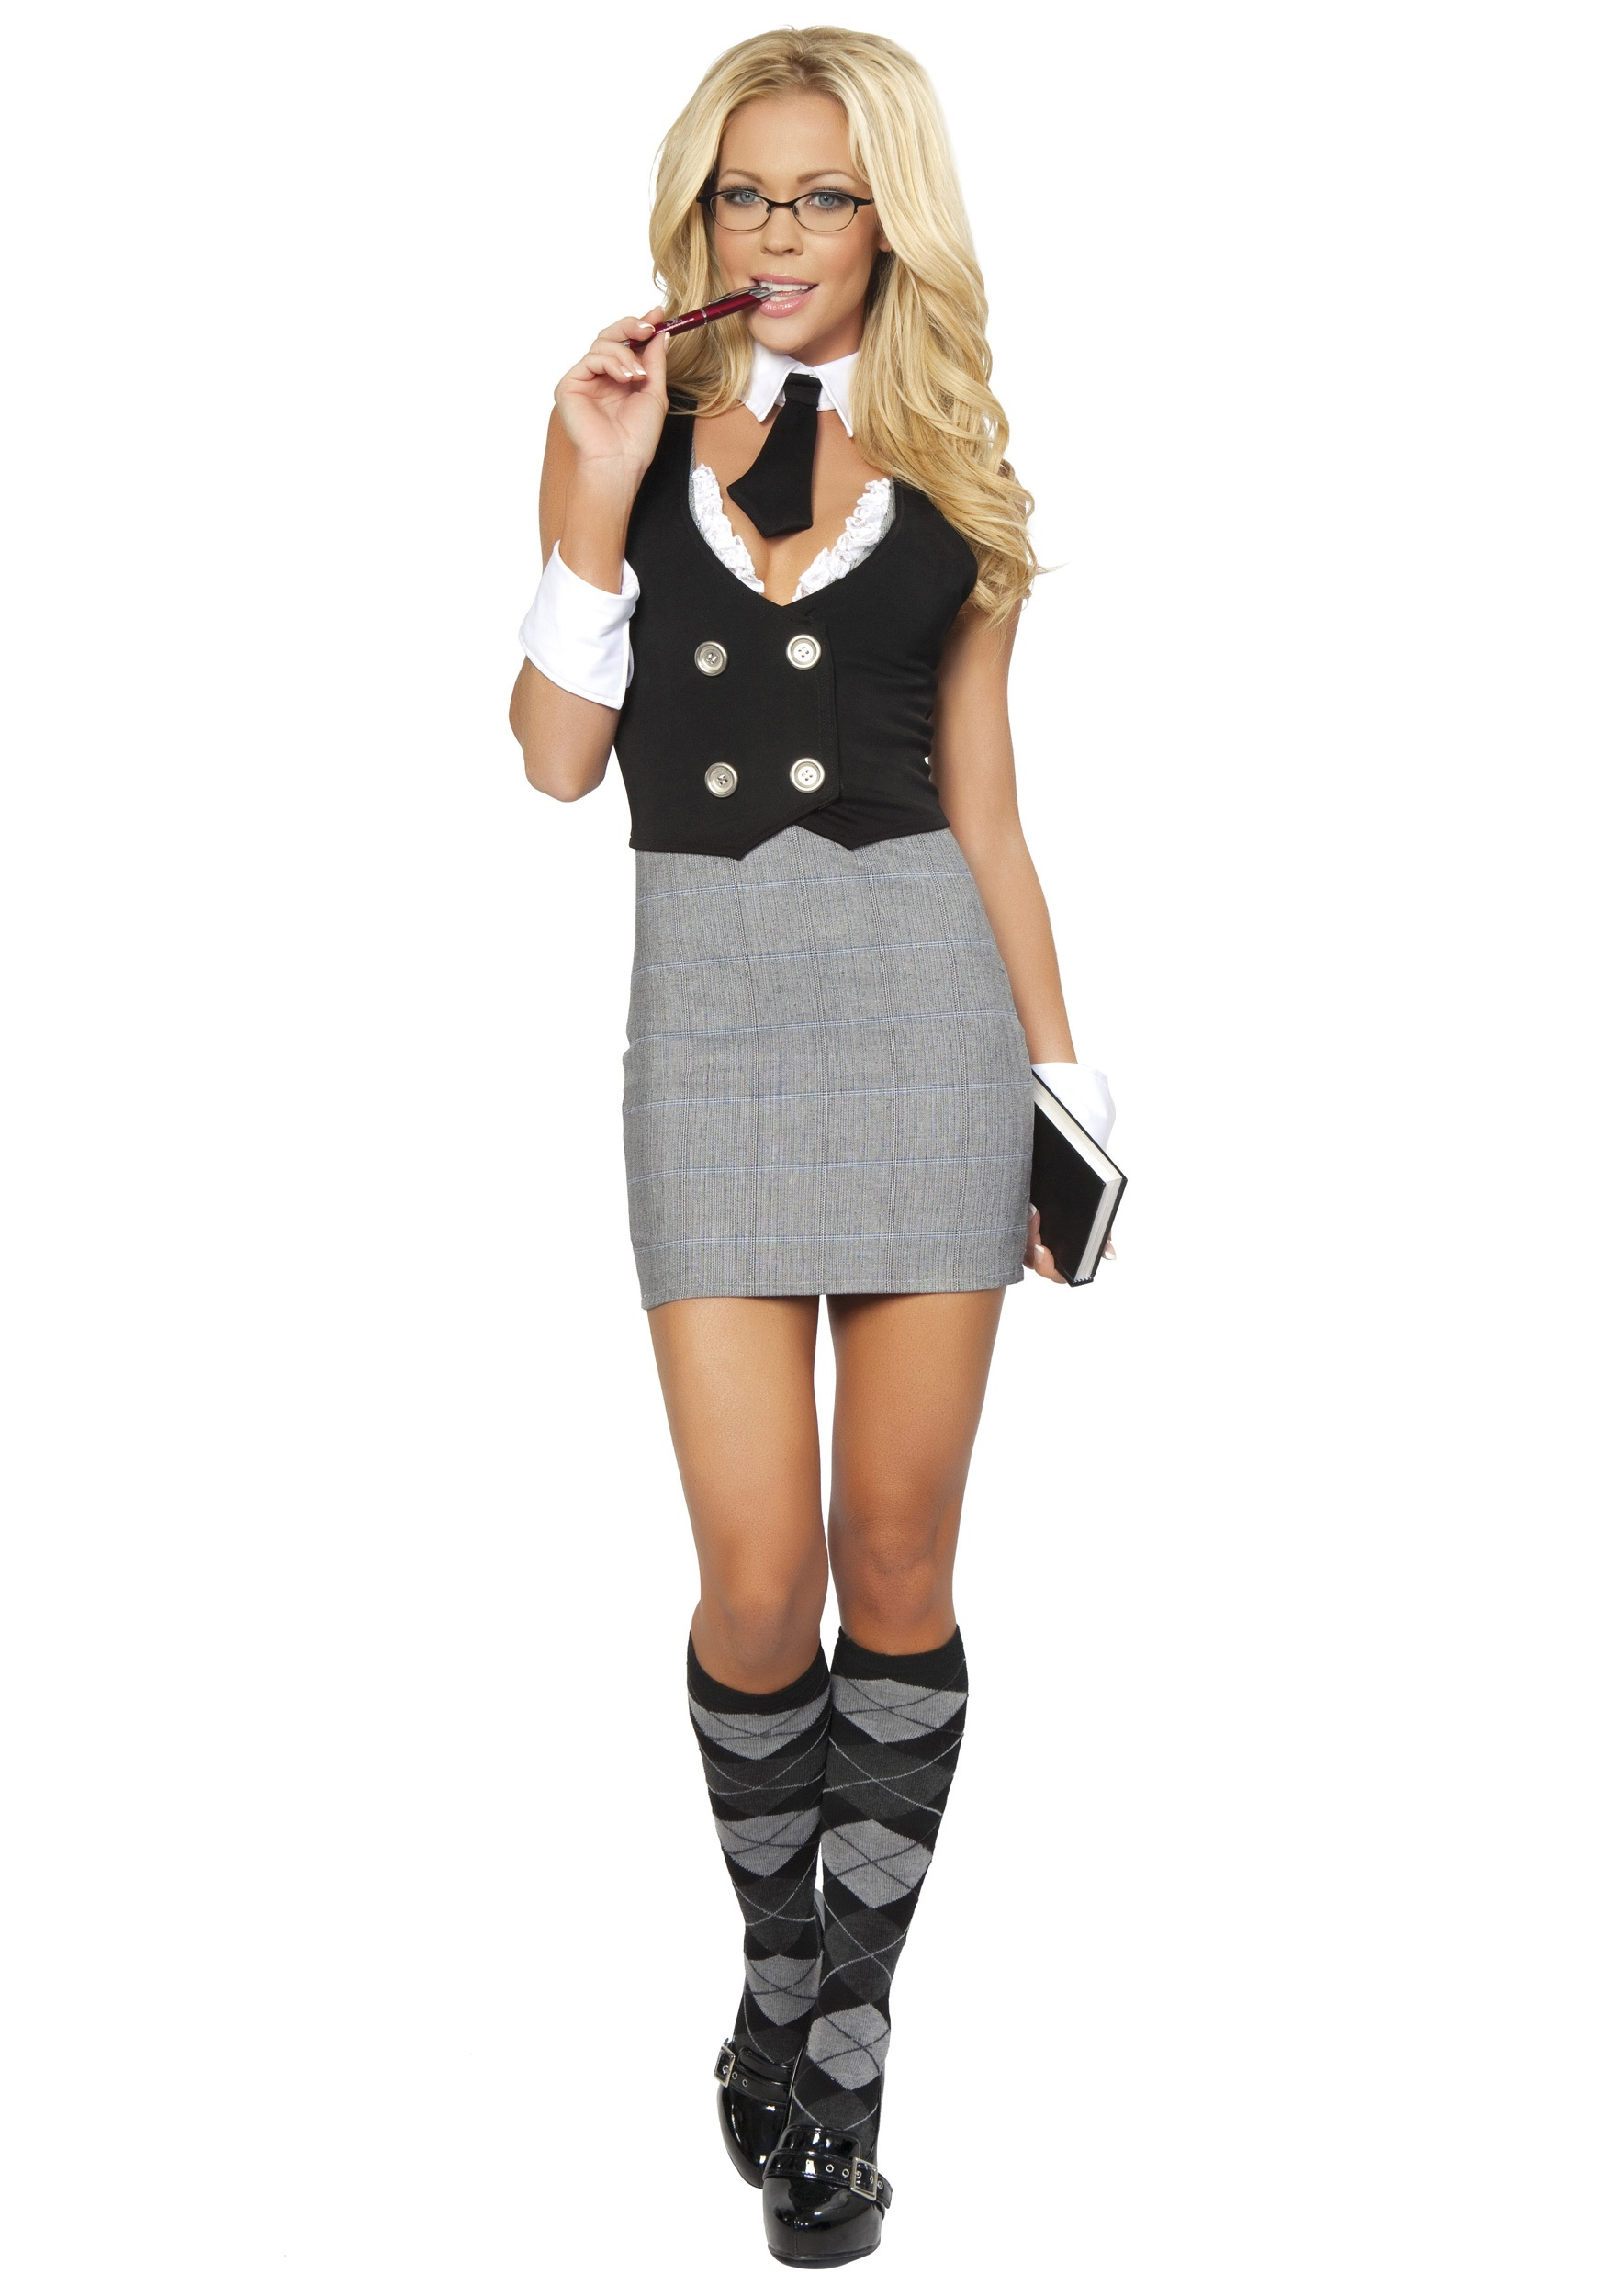 Old fashioned school teacher costume 62